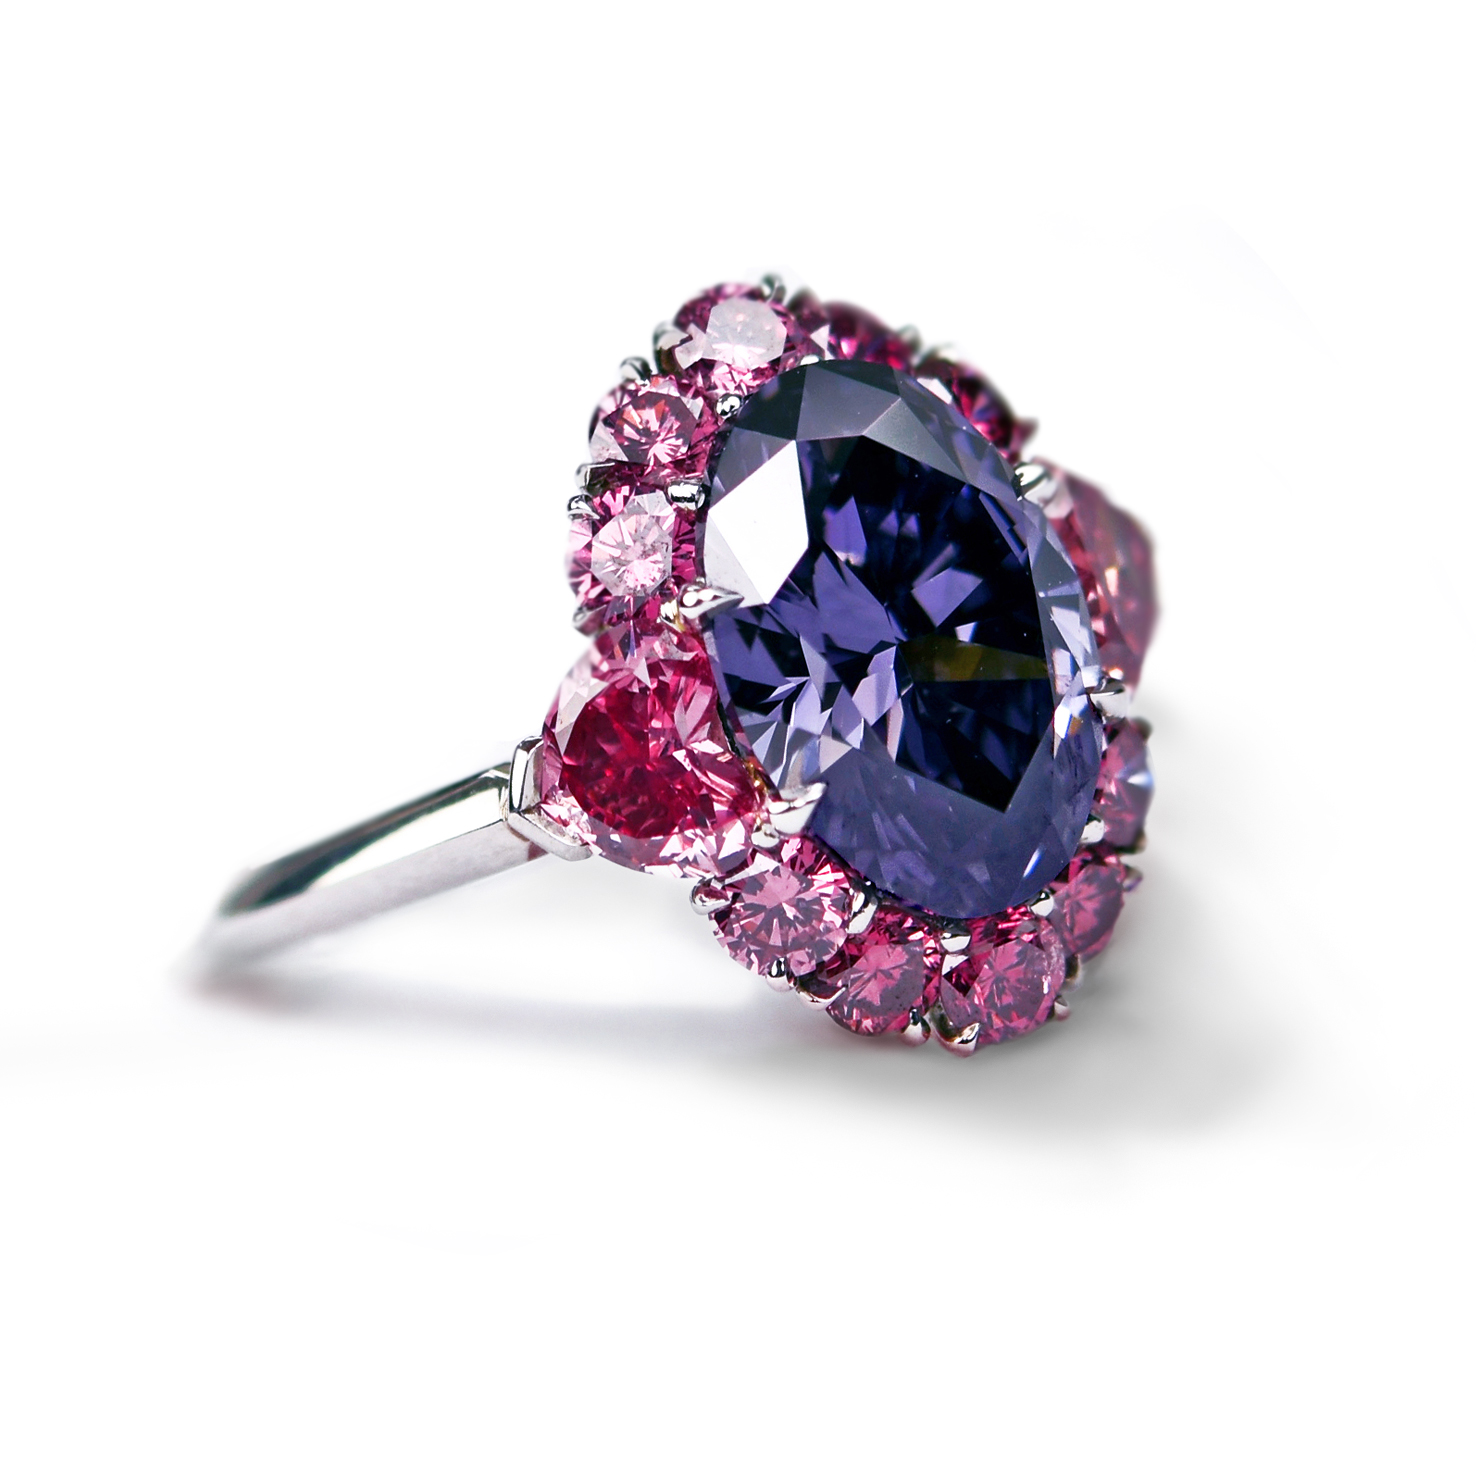 The impossibly rare 2.83 carat Argyle Violet diamond set in a masterful design accented with 12 incredible vivid pink diamonds. A true one of a kind jewel.